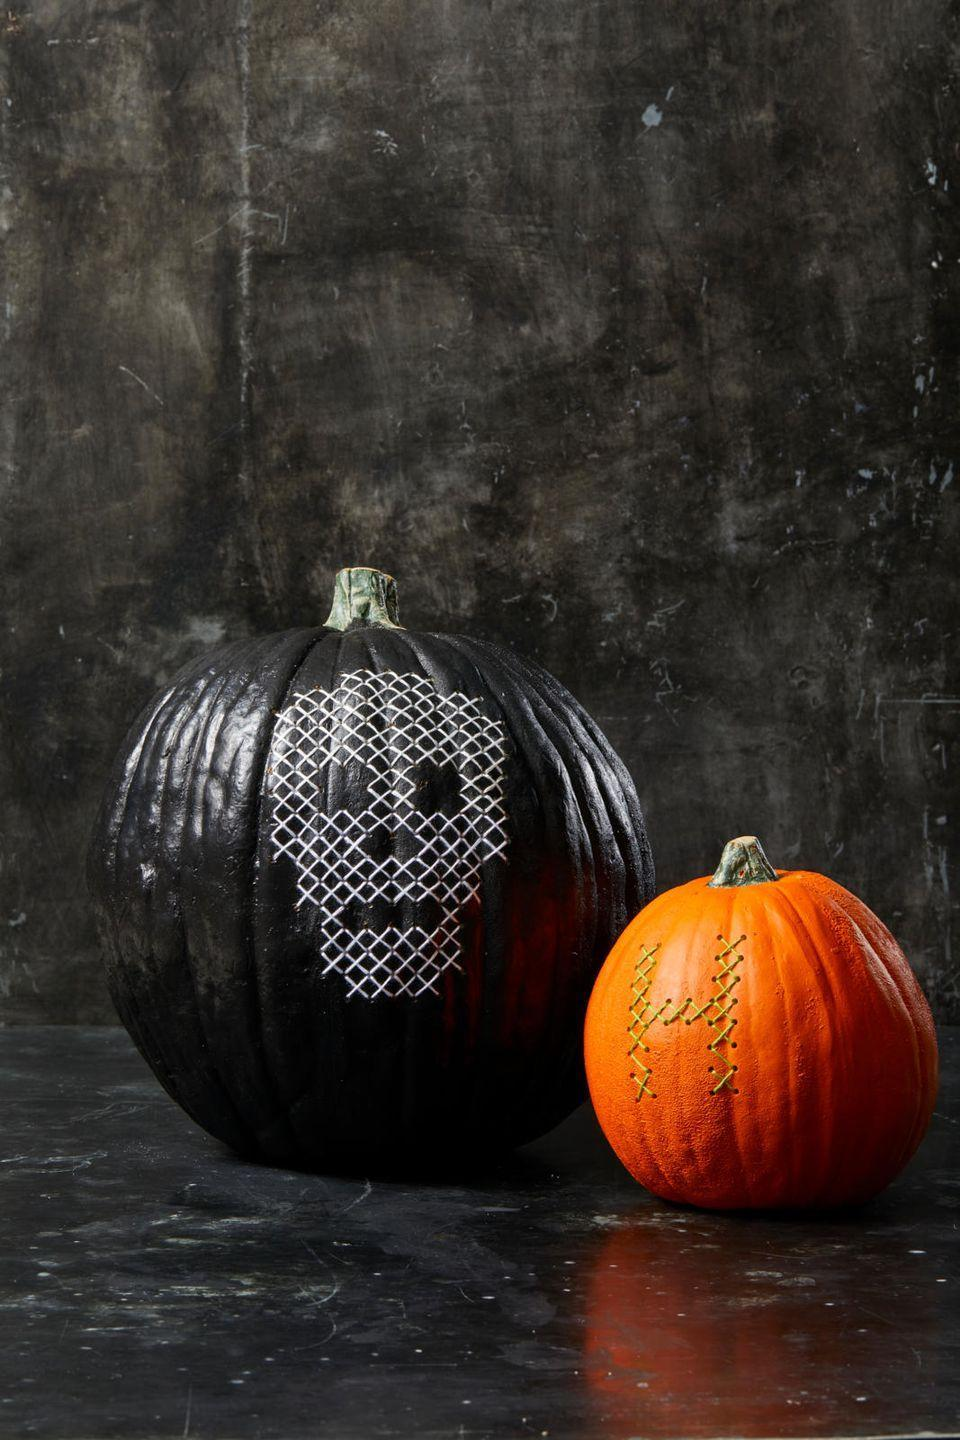 "<p>This project is a bit involved, but totally worth it. Start by downloading and printing our <a href=""https://hmg-prod.s3.amazonaws.com/files/ghkhalloween-crossstitchtemplate-1564418483.pdf?tag=syn-yahoo-20&ascsubtag=%5Bartid%7C10055.g.1714%5Bsrc%7Cyahoo-us"" rel=""nofollow noopener"" target=""_blank"" data-ylk=""slk:Cross Stitch Pumpkin templates"" class=""link rapid-noclick-resp"">Cross Stitch Pumpkin templates</a> or creating your own. Tape the template onto a faux or real (hollowed) pumpkin. Using an awl, punch holes through the the pink holes on the paper template and into the pumpkin. Remove the template, then use a needle and embroidery thread to create ""X"" patterns between the dots.</p><p><a class=""link rapid-noclick-resp"" href=""https://www.amazon.com/Woration-High-Grade-Artificial-Decoration-Thanksgiving/dp/B07VJ3NV31/?tag=syn-yahoo-20&ascsubtag=%5Bartid%7C10055.g.1714%5Bsrc%7Cyahoo-us"" rel=""nofollow noopener"" target=""_blank"" data-ylk=""slk:SHOP FAUX PUMPKINS"">SHOP FAUX PUMPKINS</a></p>"